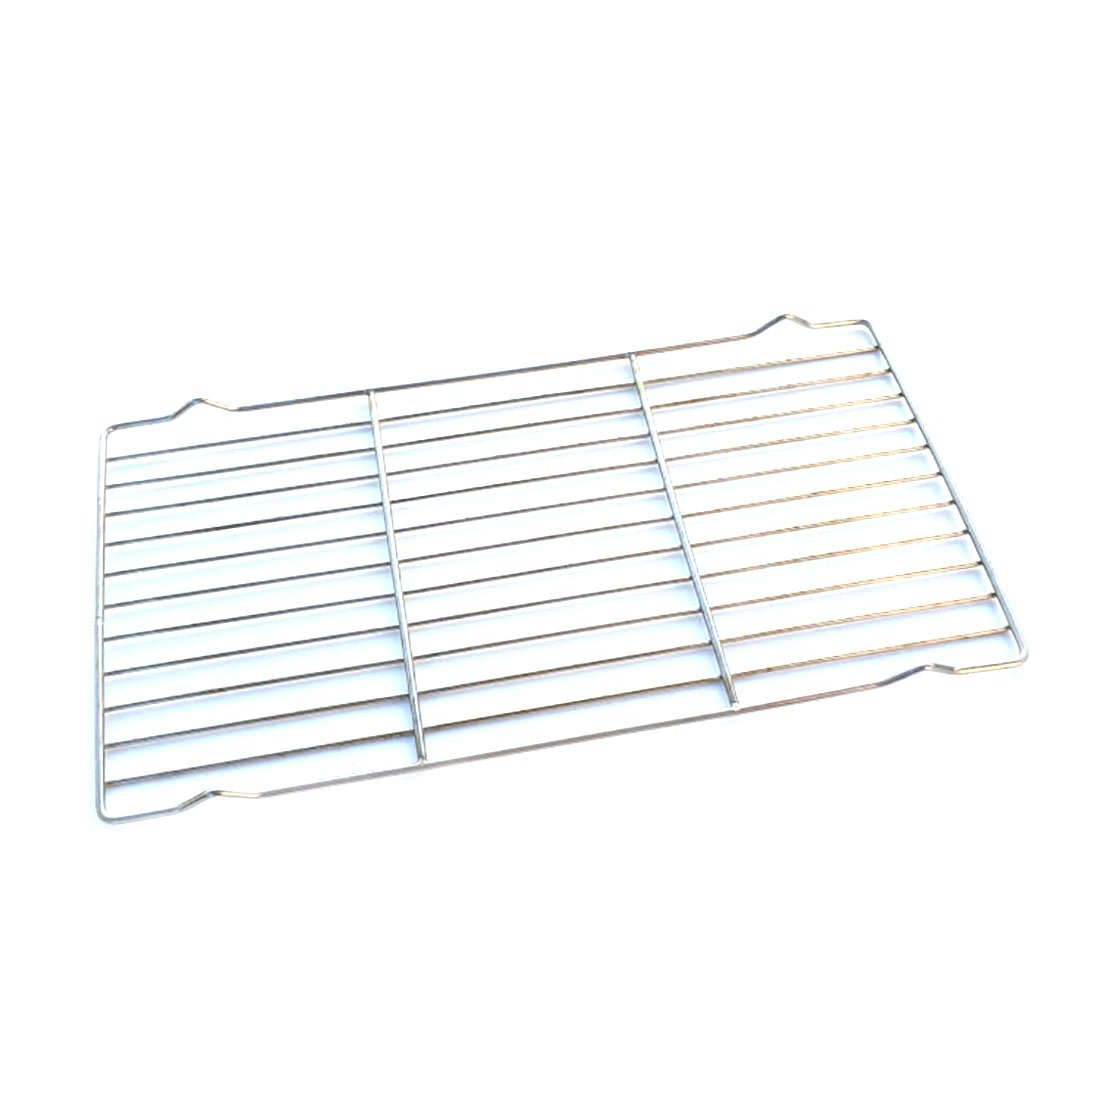 B&C.Room Multi-Purpose Wire Cooling Steaming Rack Stainless Steel Baking Rack Sheet Pan Barbecue Grills Grate 8021.5cm